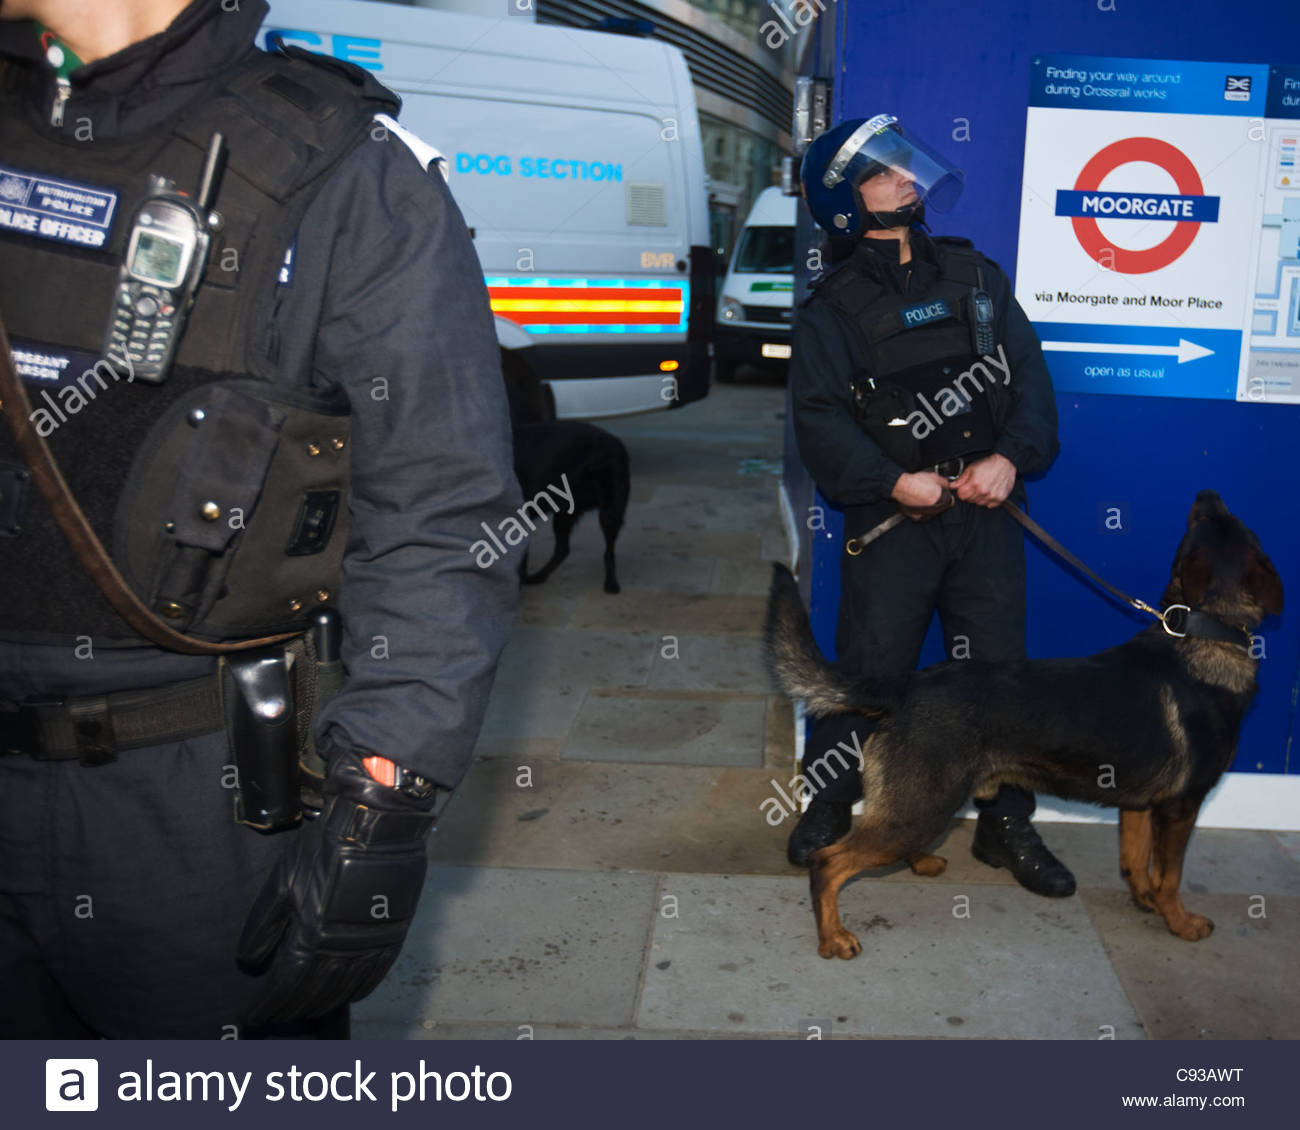 Police out in force at Moorgate with police dogs - Stock Image